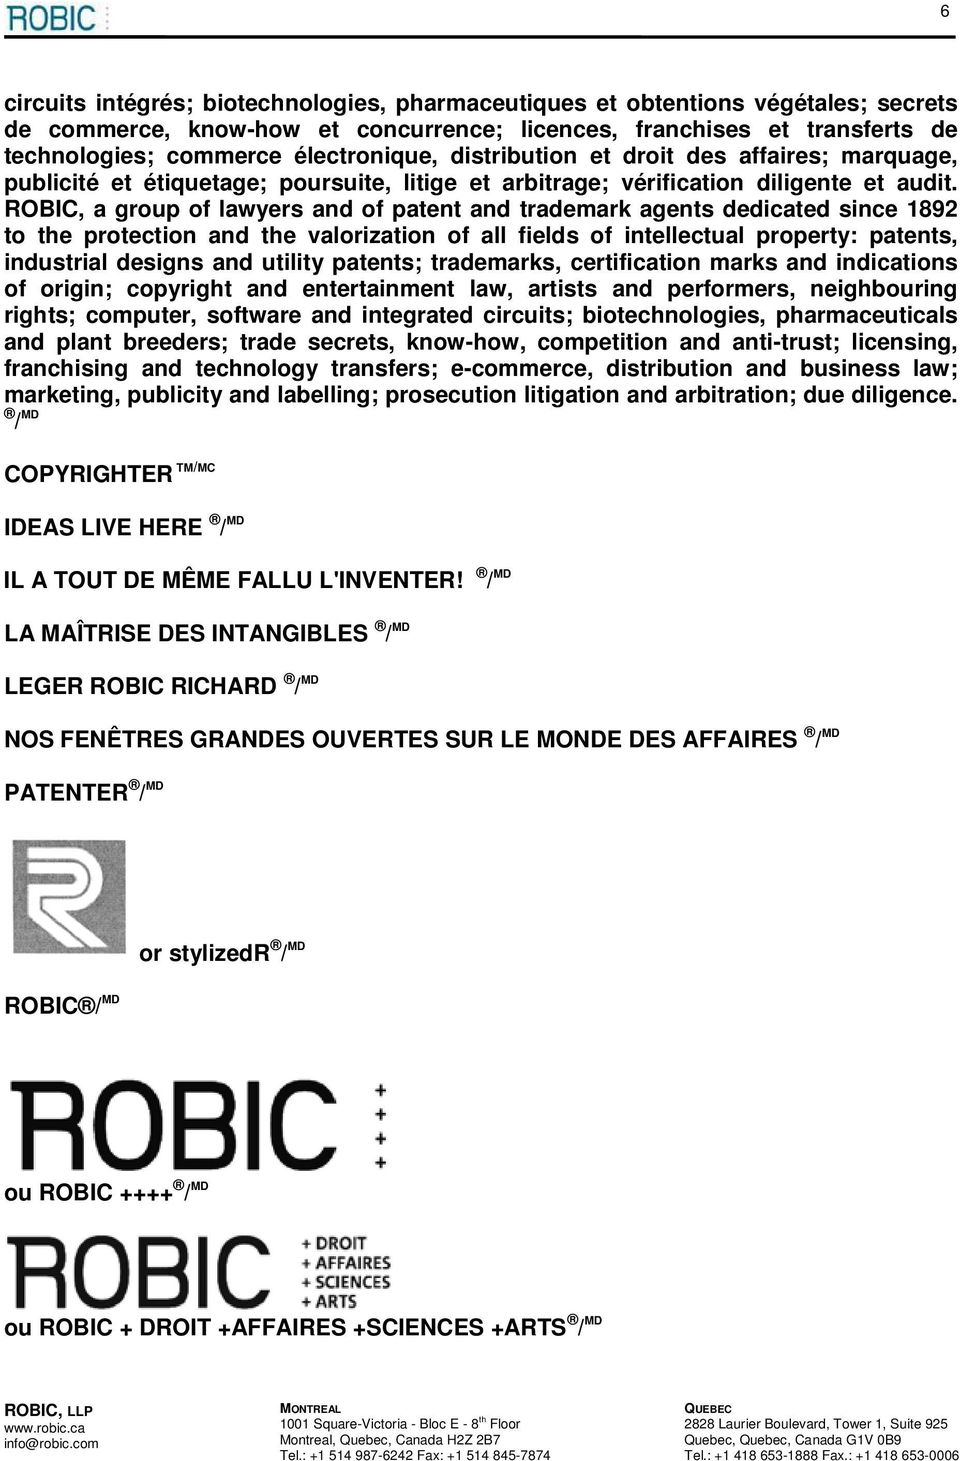 ROBIC, a group of lawyers and of patent and trademark agents dedicated since 1892 to the protection and the valorization of all fields of intellectual property: patents, industrial designs and